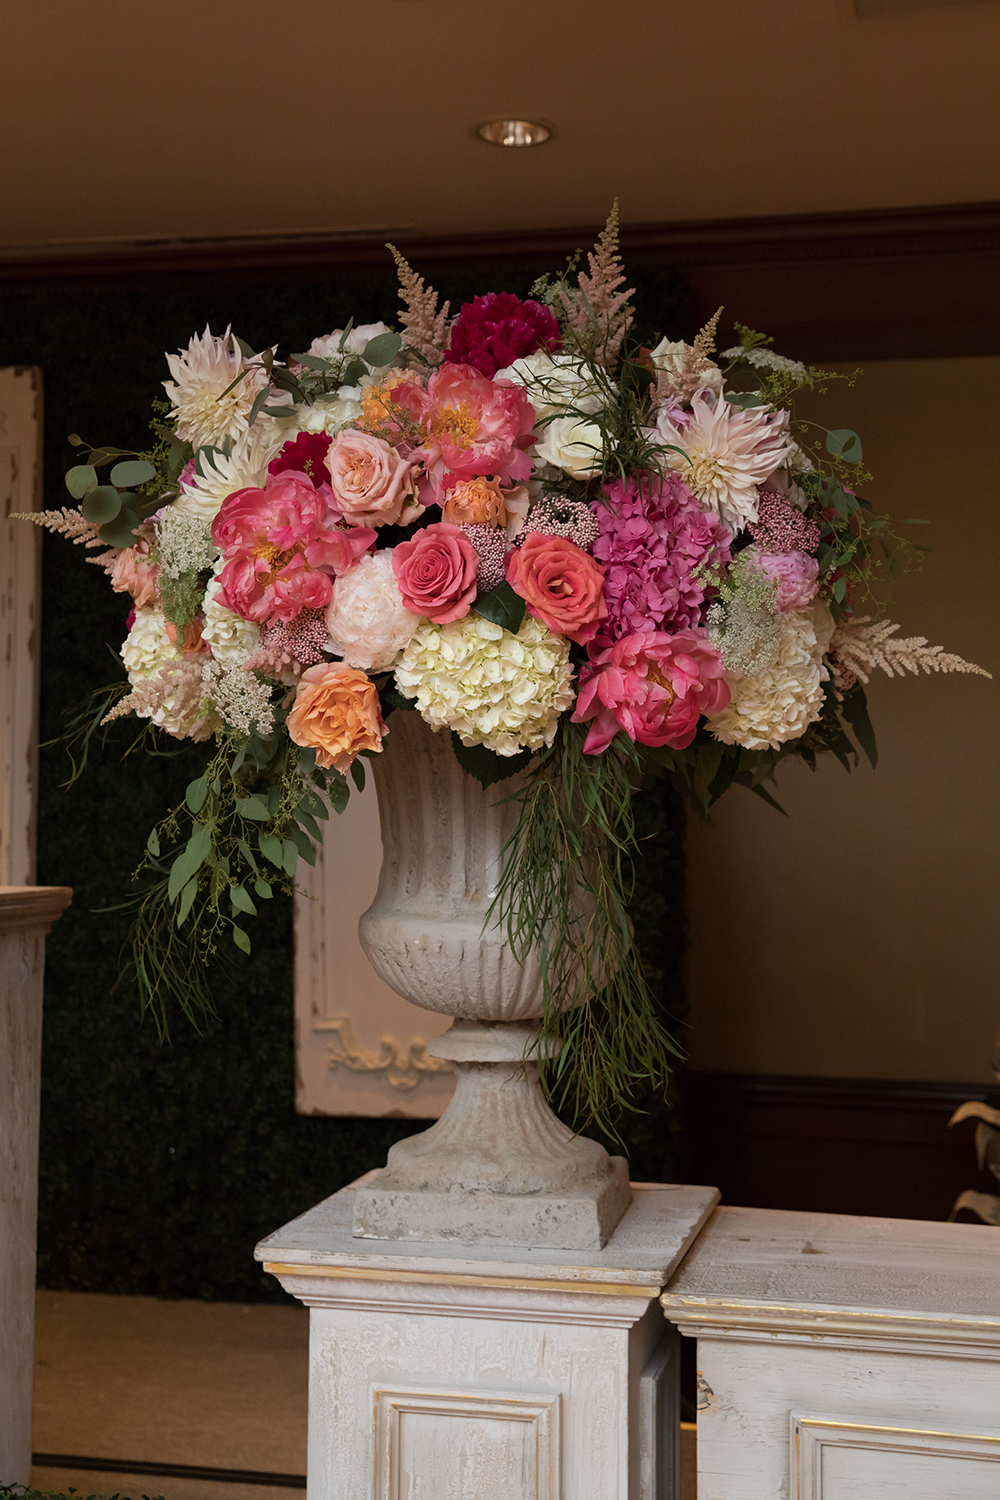 Houstonian Hotel, flowers, vase, todd events, bouquet, arrangement, floral, pink, coral